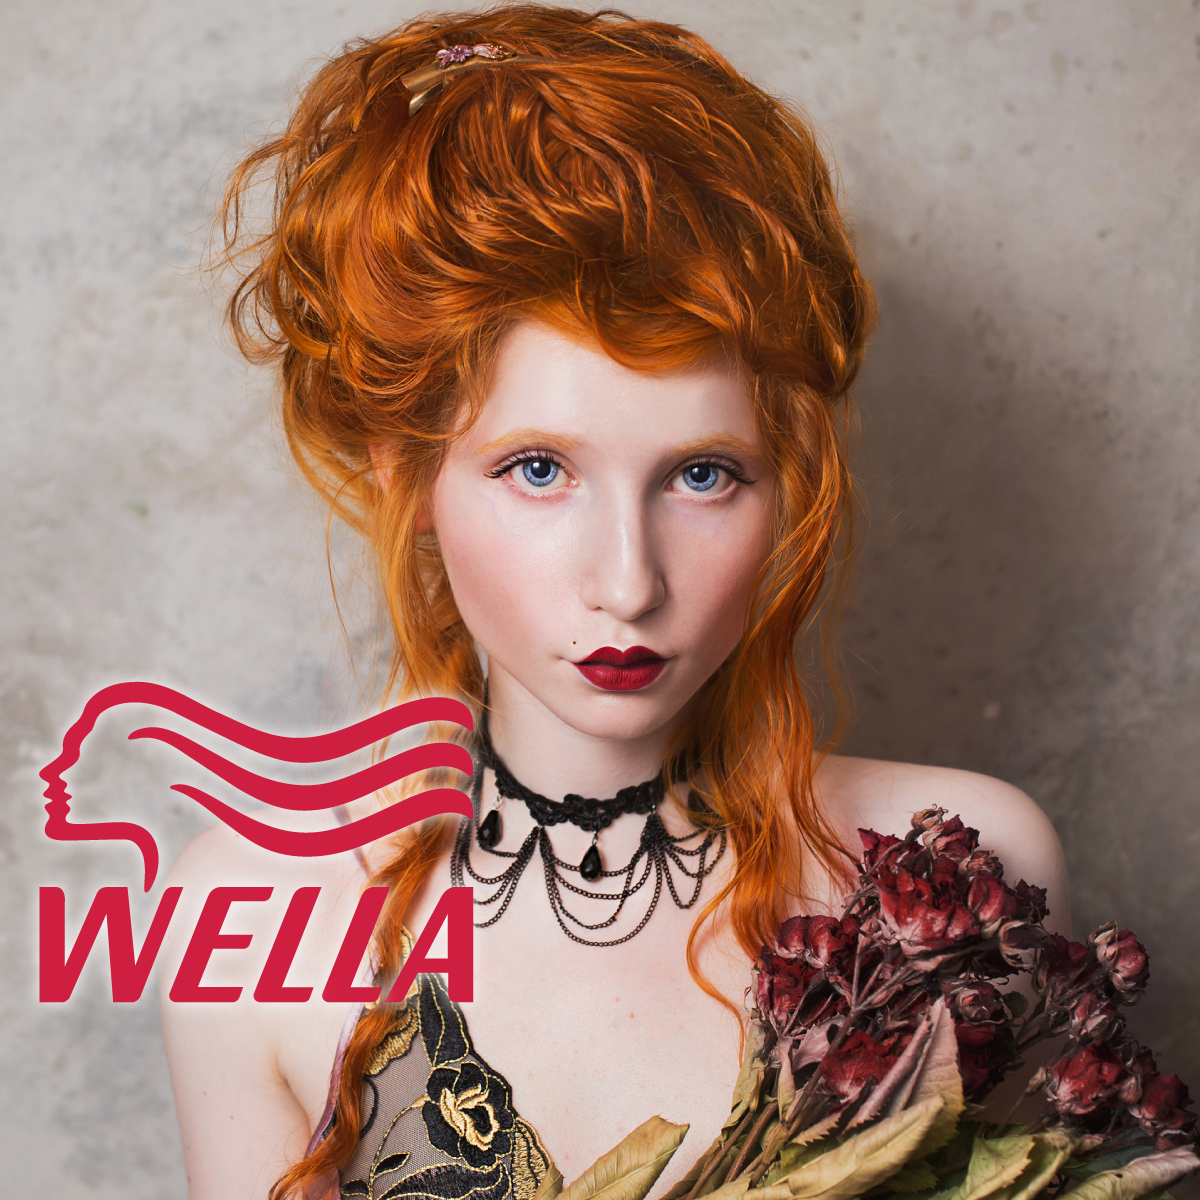 A complete line of Wella products